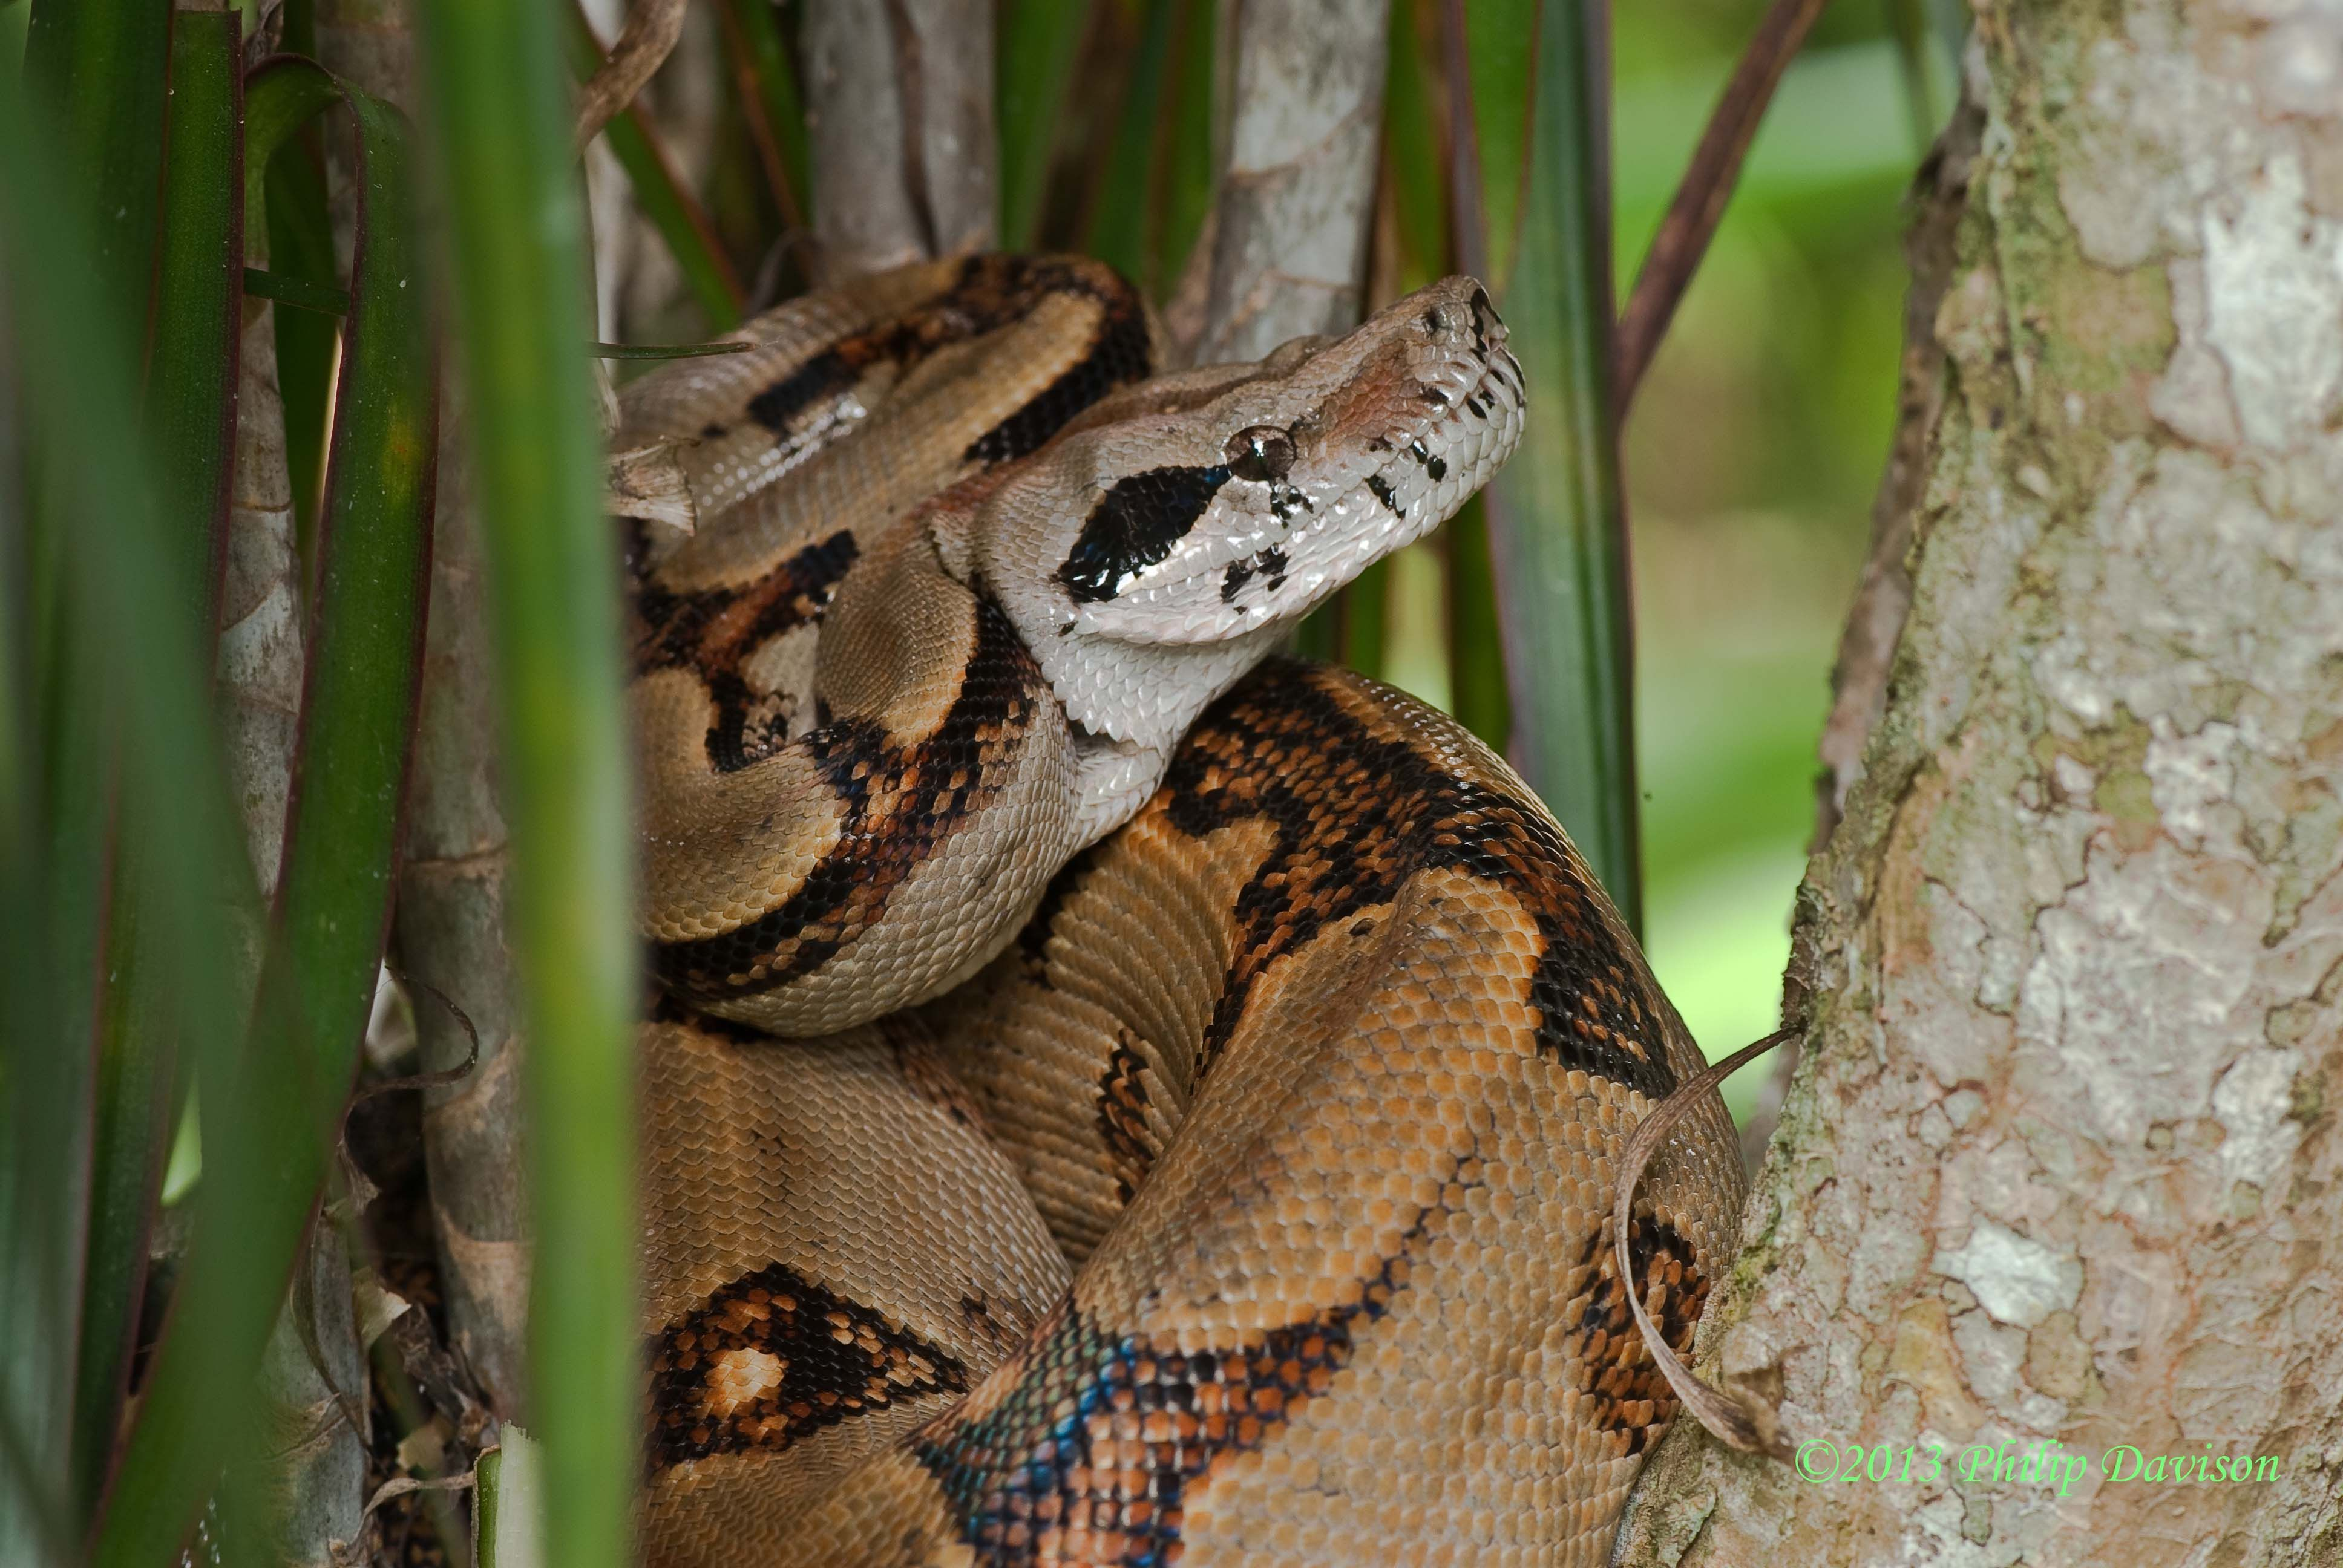 And the boa constrictor behinds the tree or beneath the